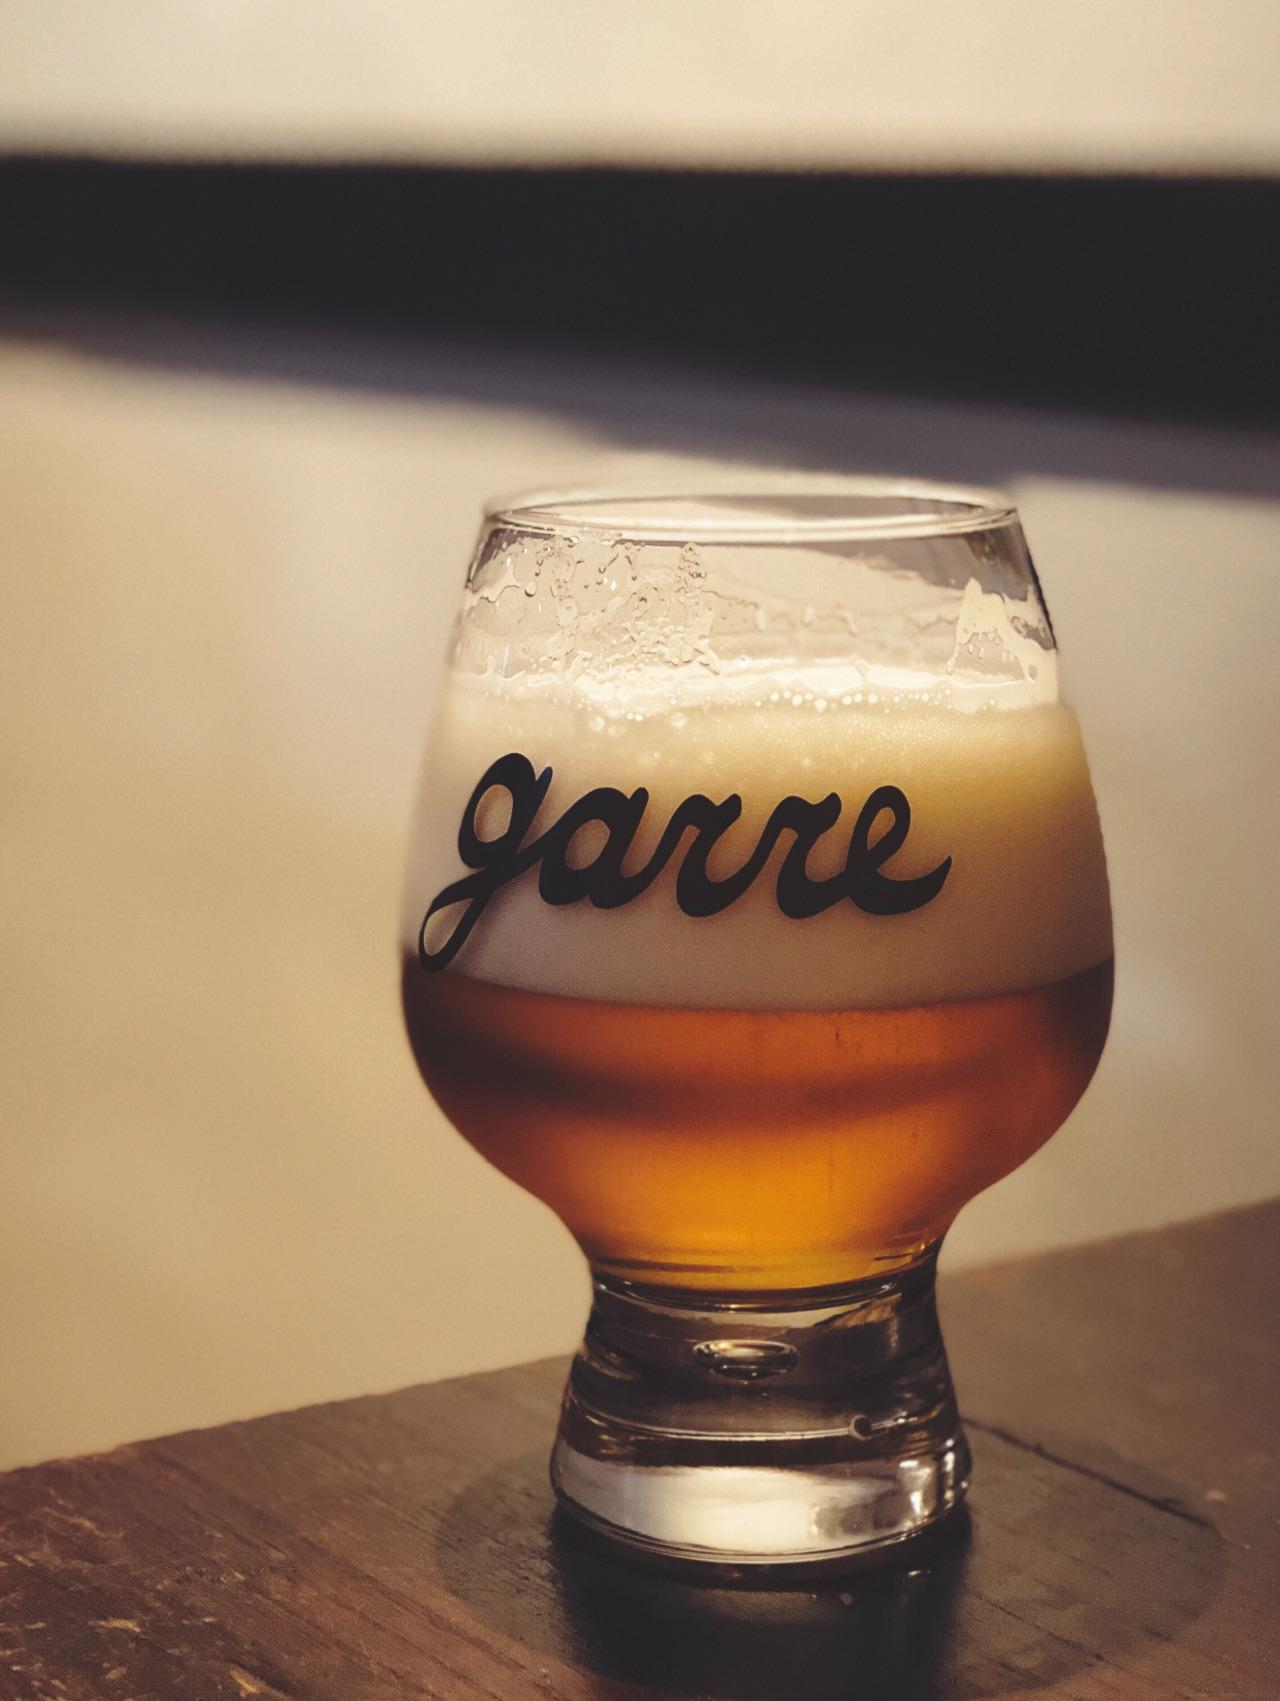 The legendary Tripel De Garre.